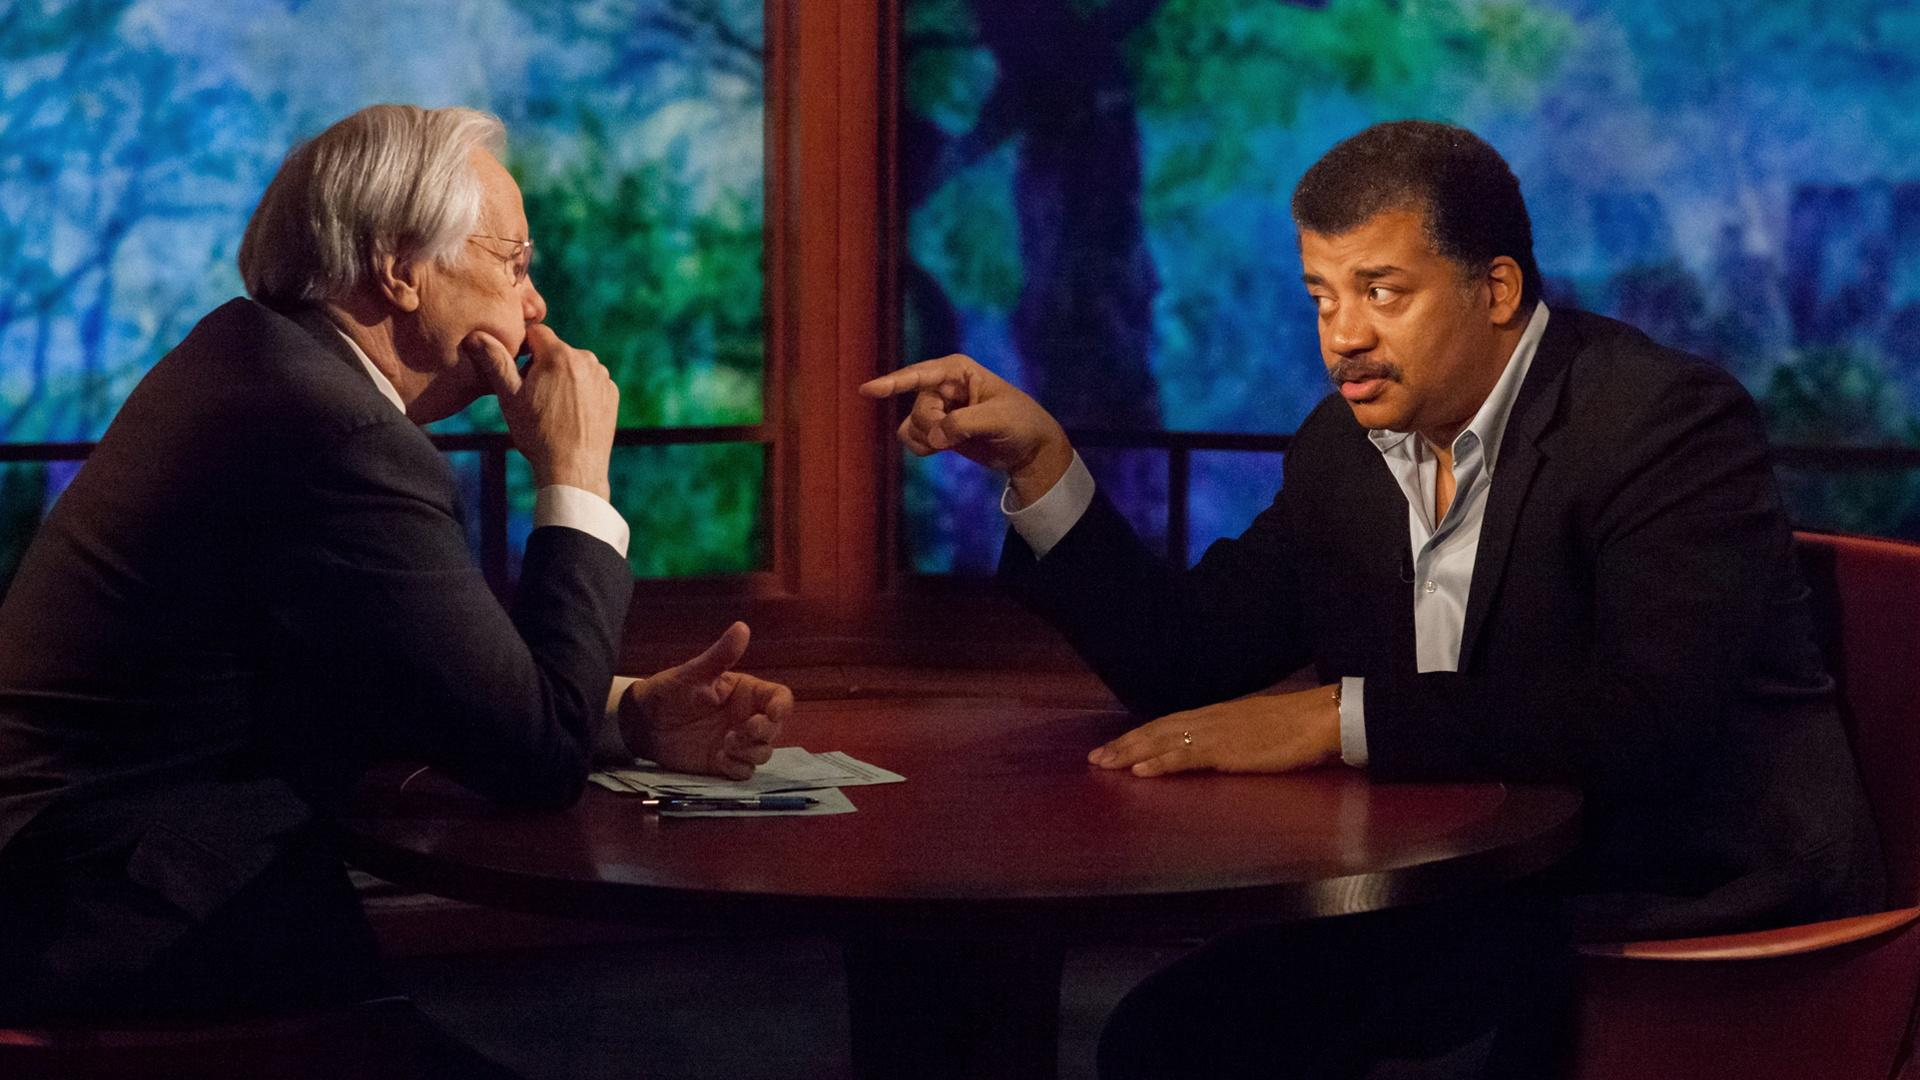 Neil deGrasse Tyson on the New Cosmos  image